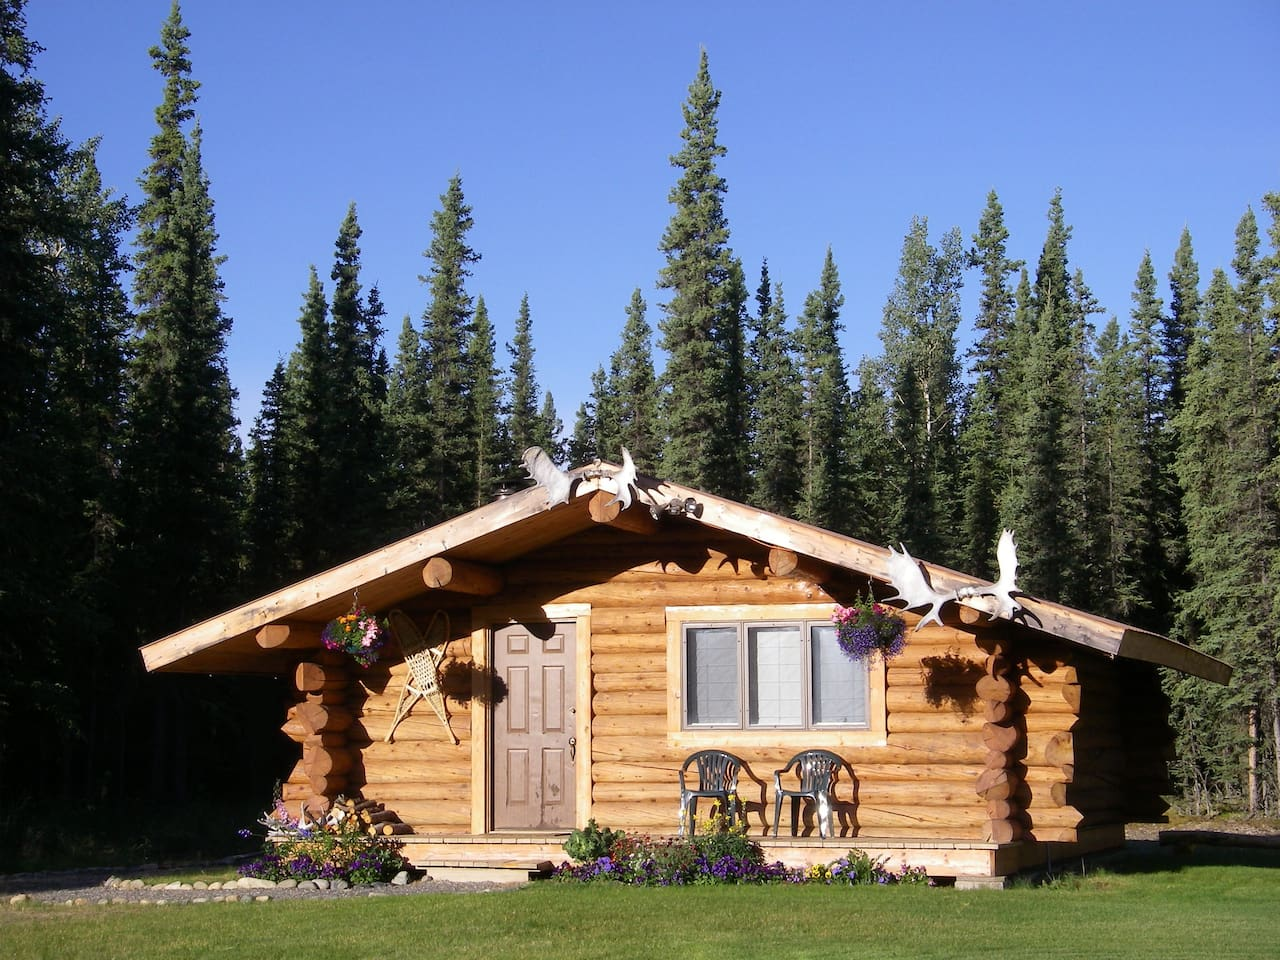 Cloudberry Cabin:  Your home for a quiet, peaceful stay only 3 miles from town in Tok, Alaska